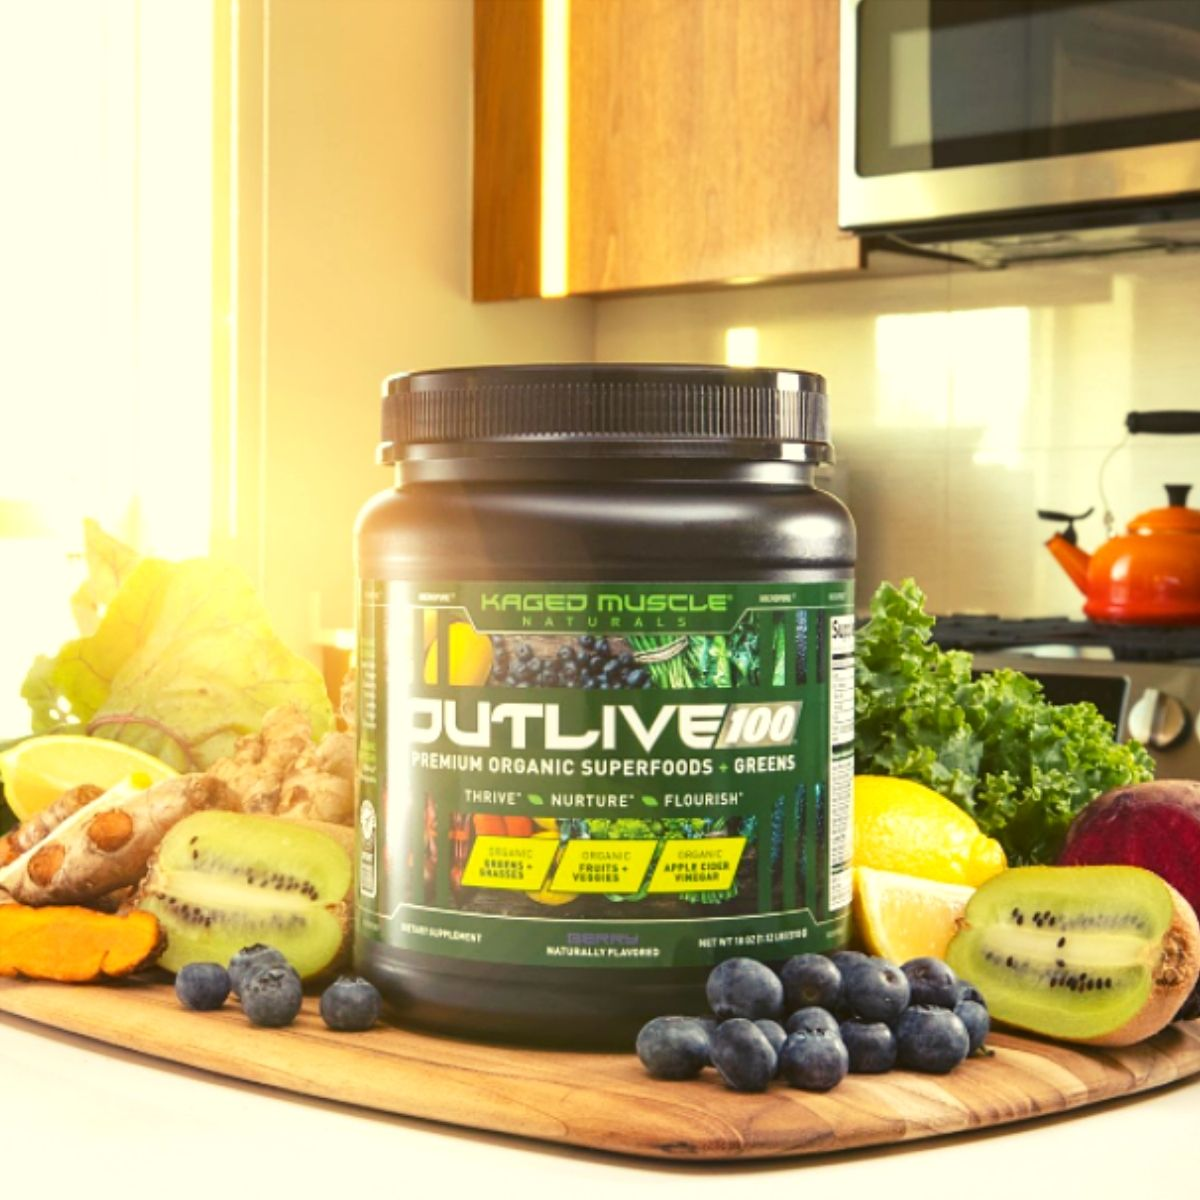 Kaged Muscle's New Outlive100 Greens Formula Coming Soon